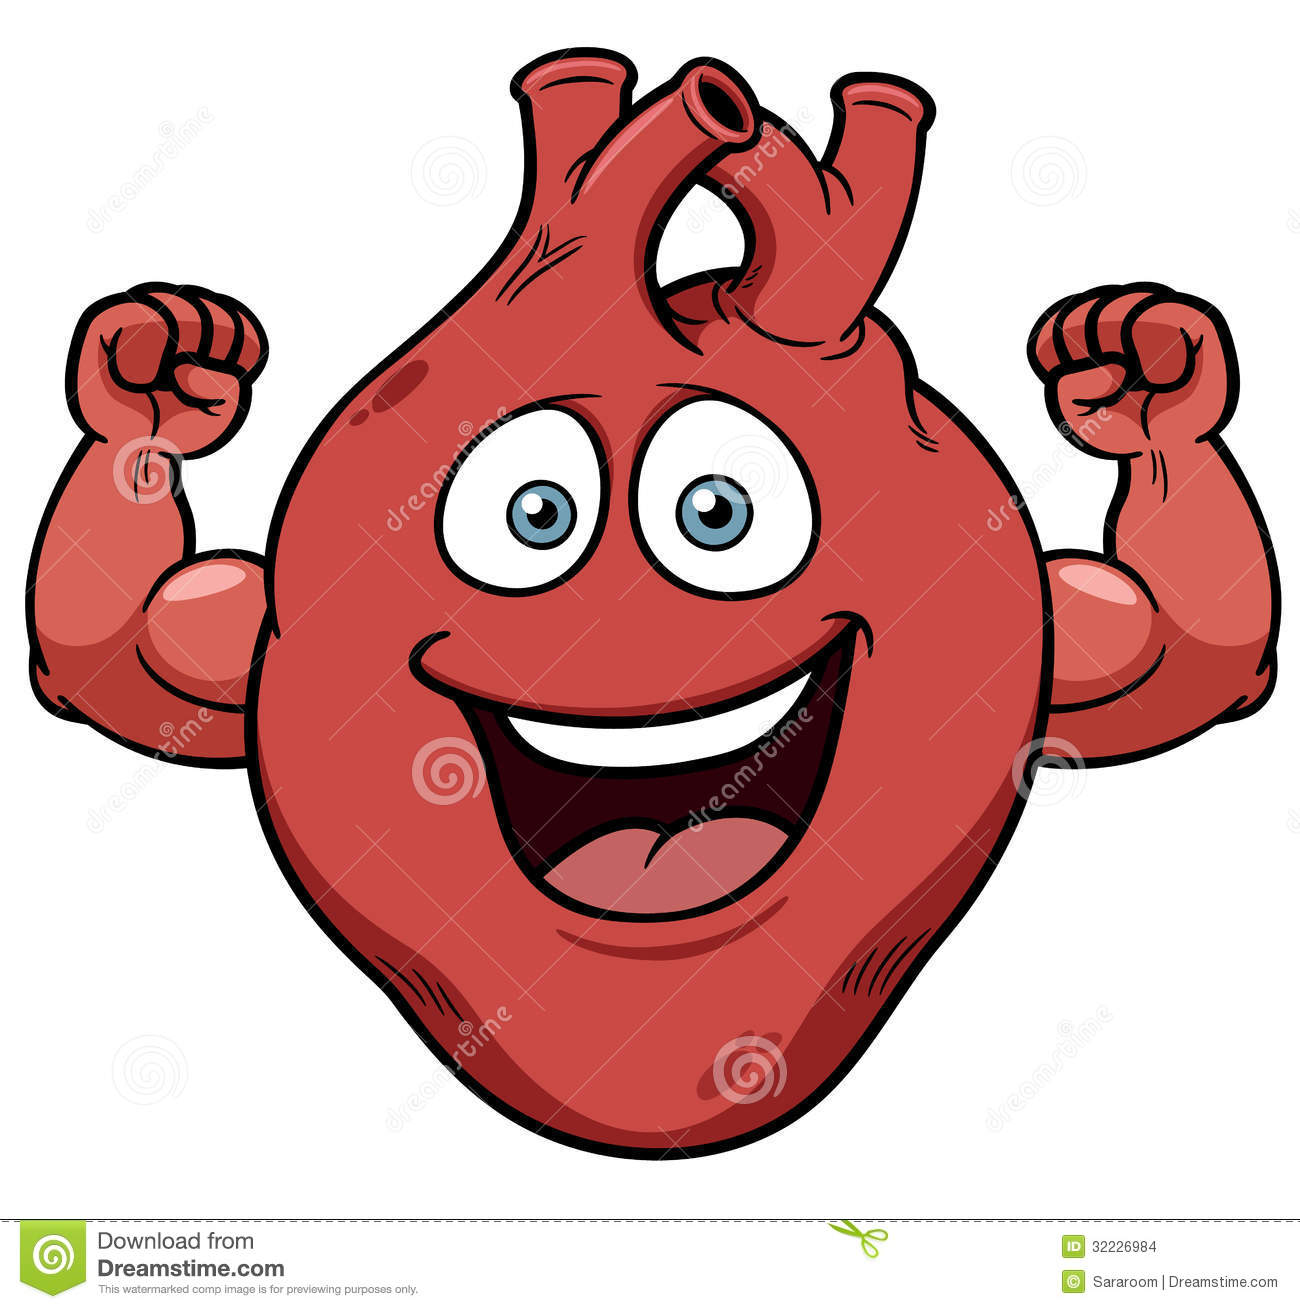 clipart of a human heart - photo #32